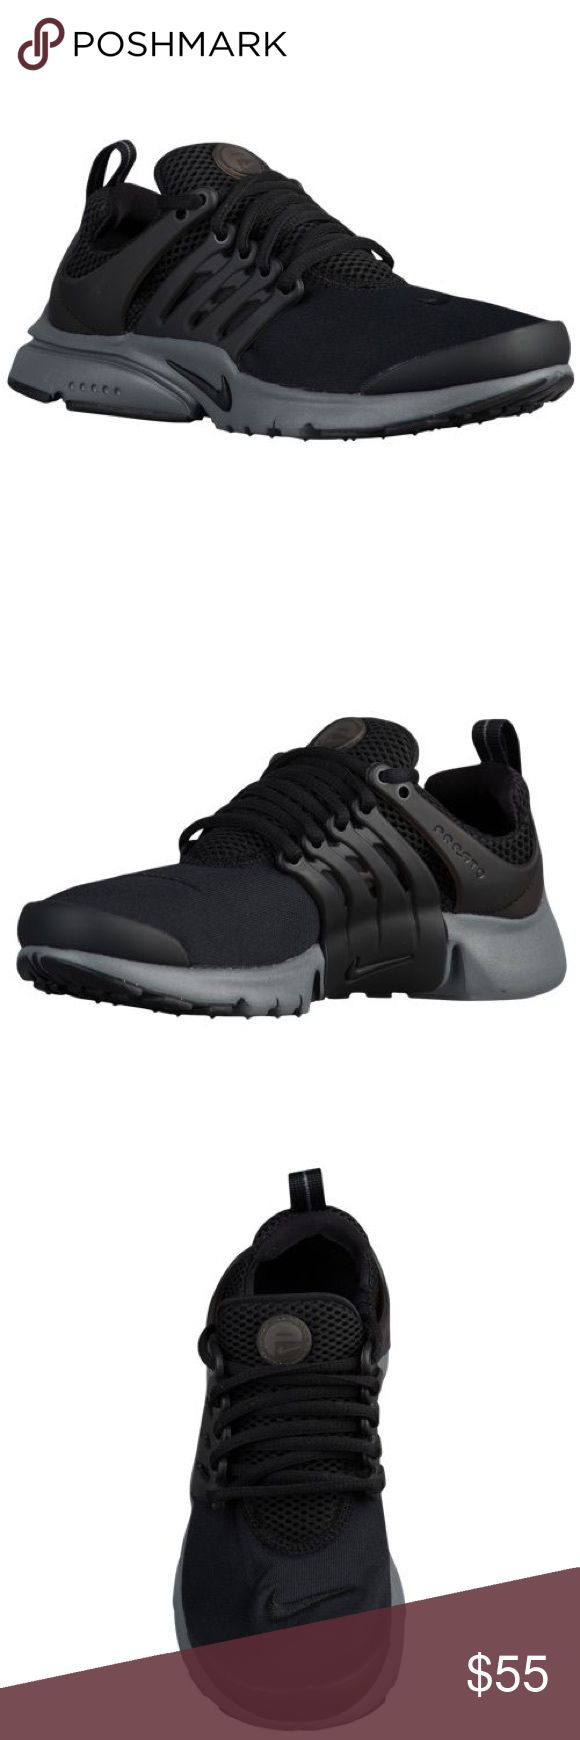 Nike Presto (GRADE SCHOOL) In Excellent Condition!!! Like New!!! Only Worn Once!!! (Size:6) GRADE SCHOOL SIZE!!! (Color:Black/Grey) No Trade No Modeling Nike Shoes Sneakers